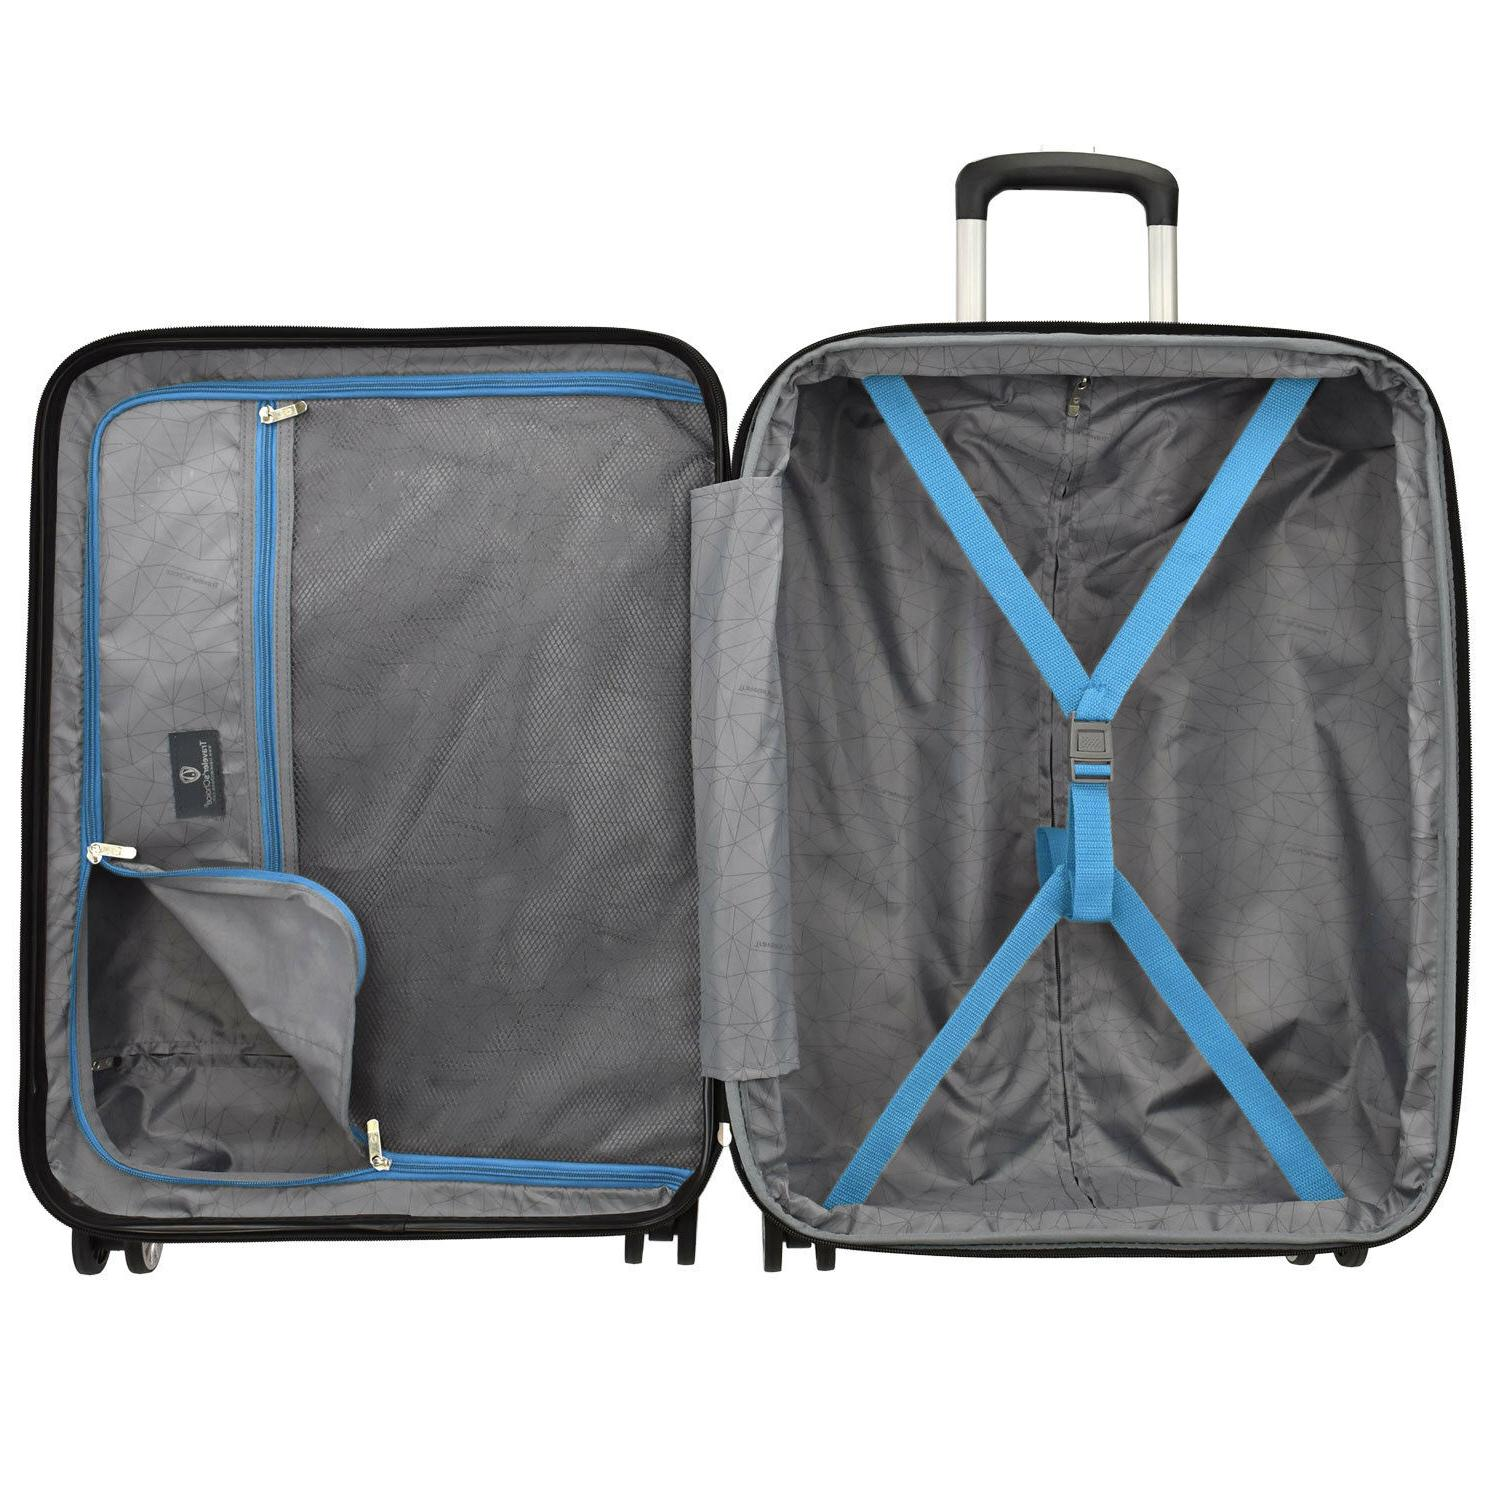 Charvi Hardside 8-Wheel Luggage w/Matching Color